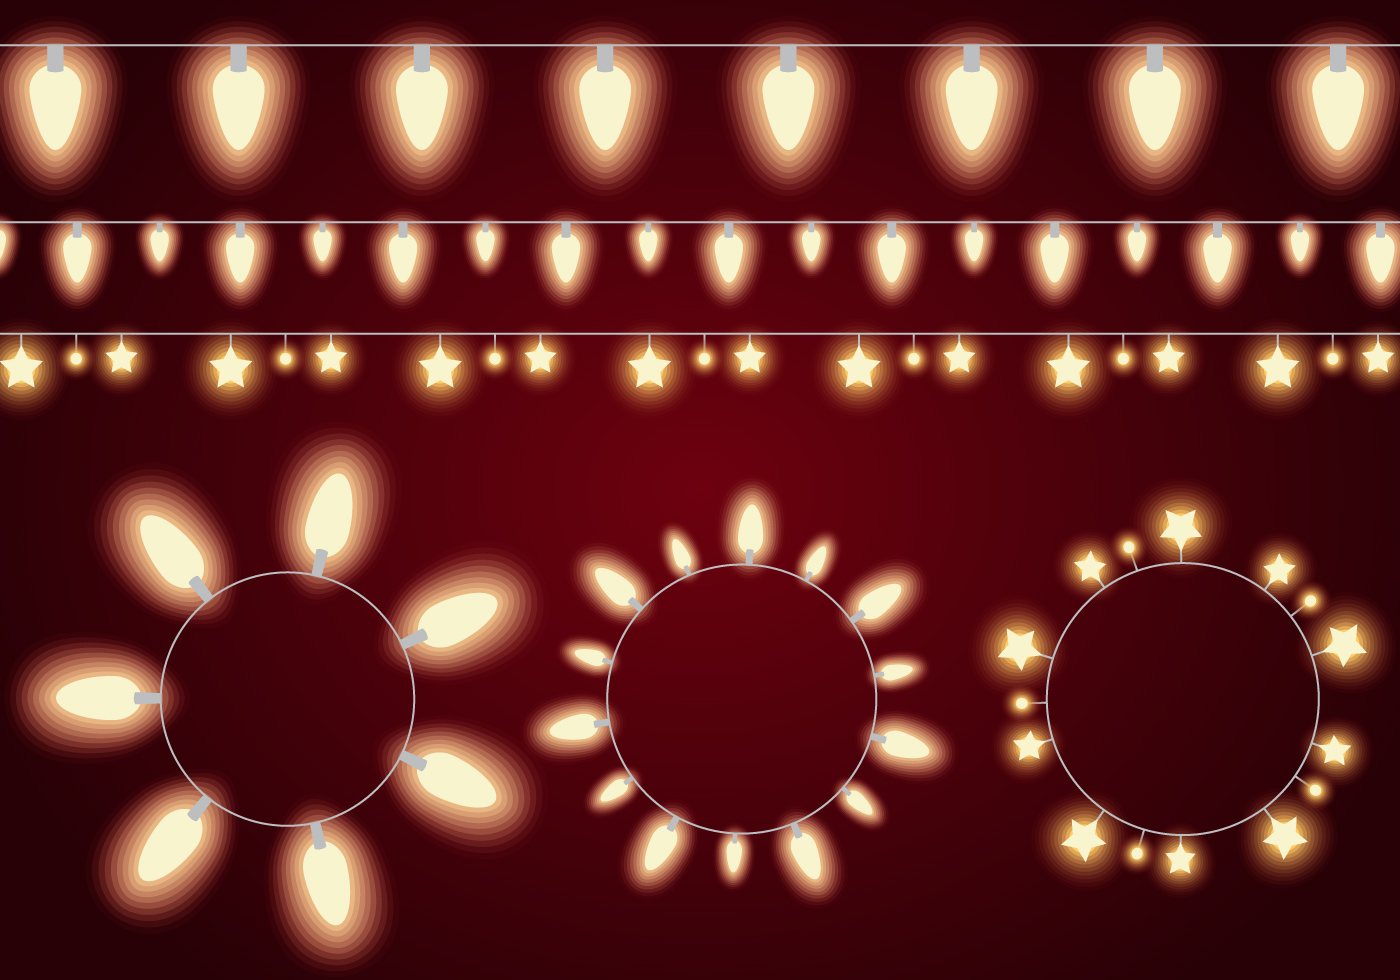 String Lights Eps : Glowing Light String Vectors - Download Free Vector Art, Stock Graphics & Images